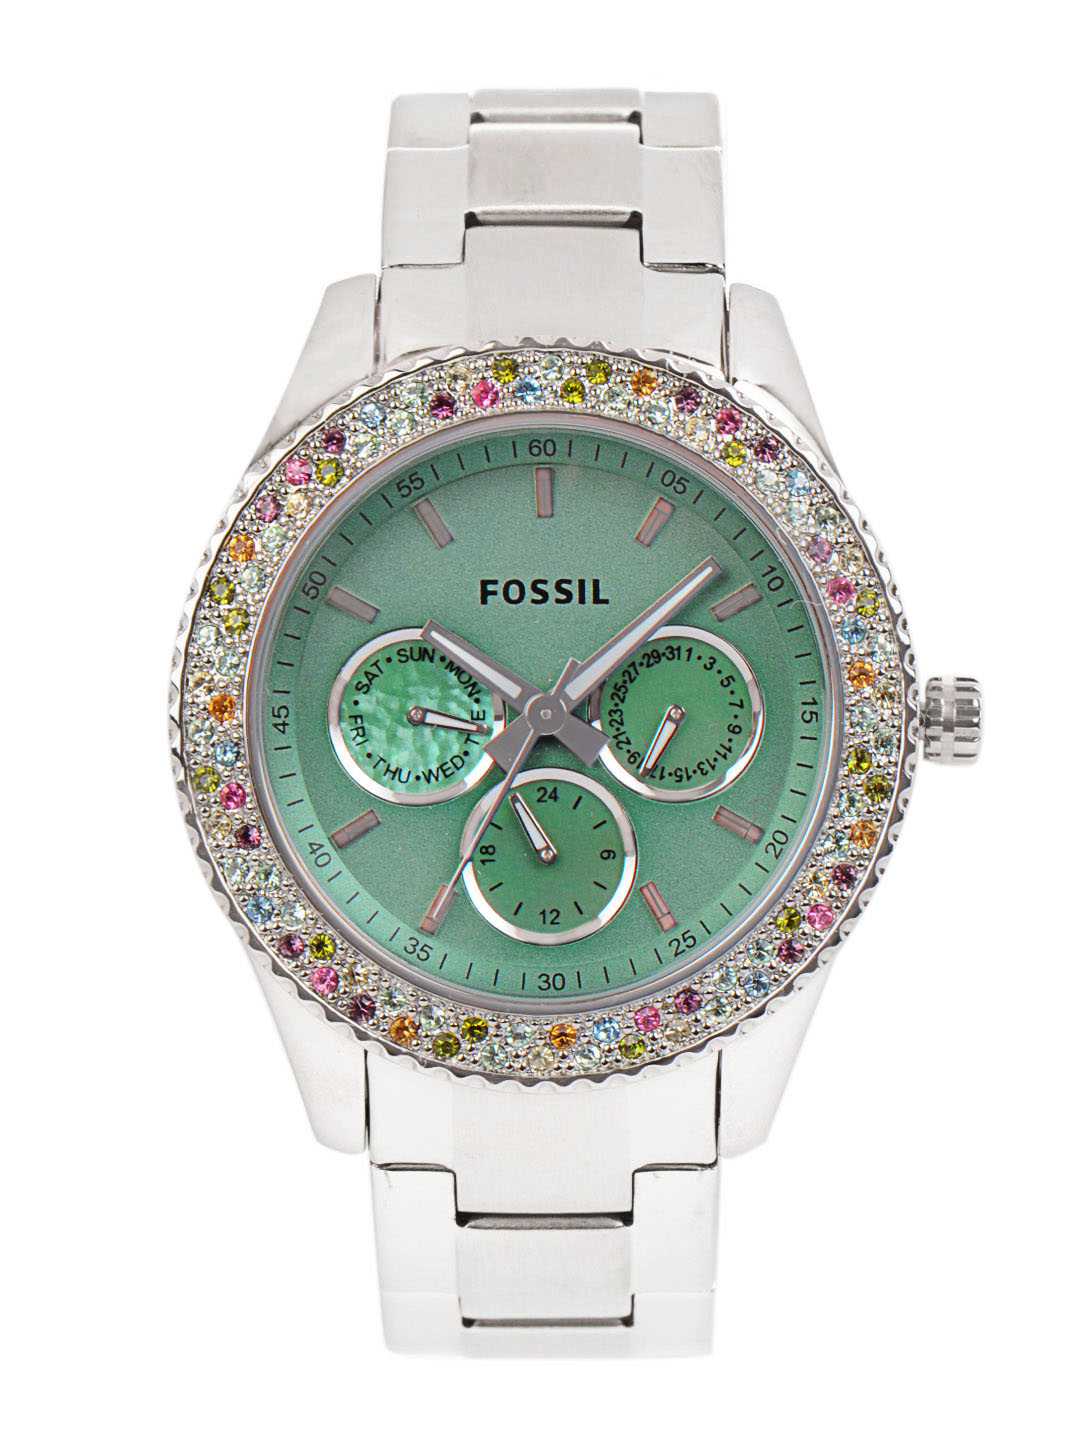 Fossil Women Green Dial Chronograph Watch